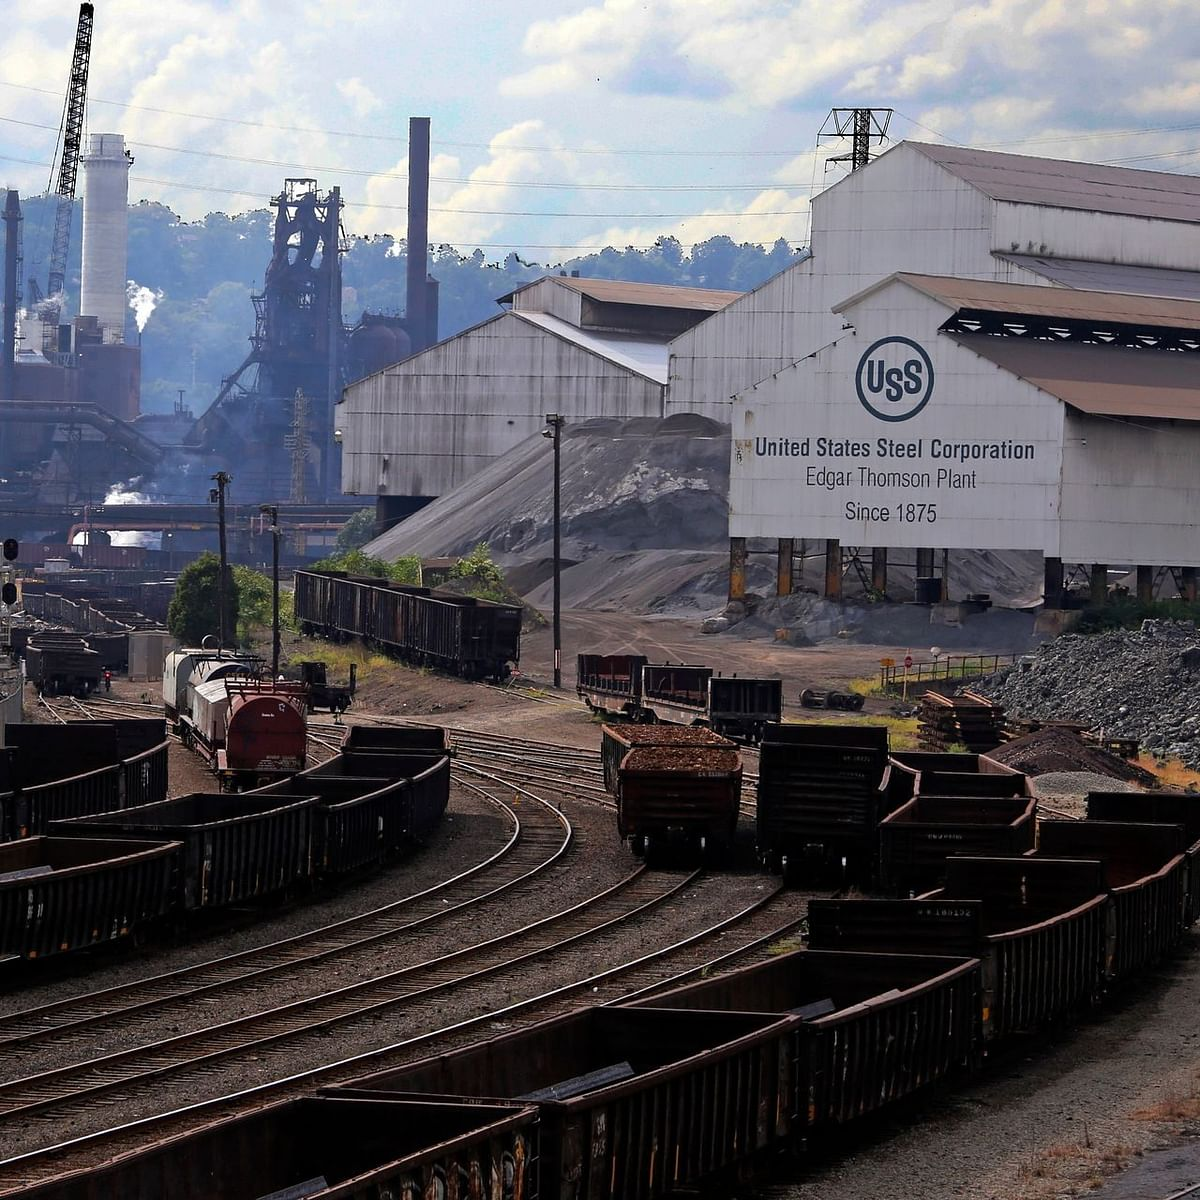 US Steel Expects USD 2 Billion EBIDTA in Q3 of 2021